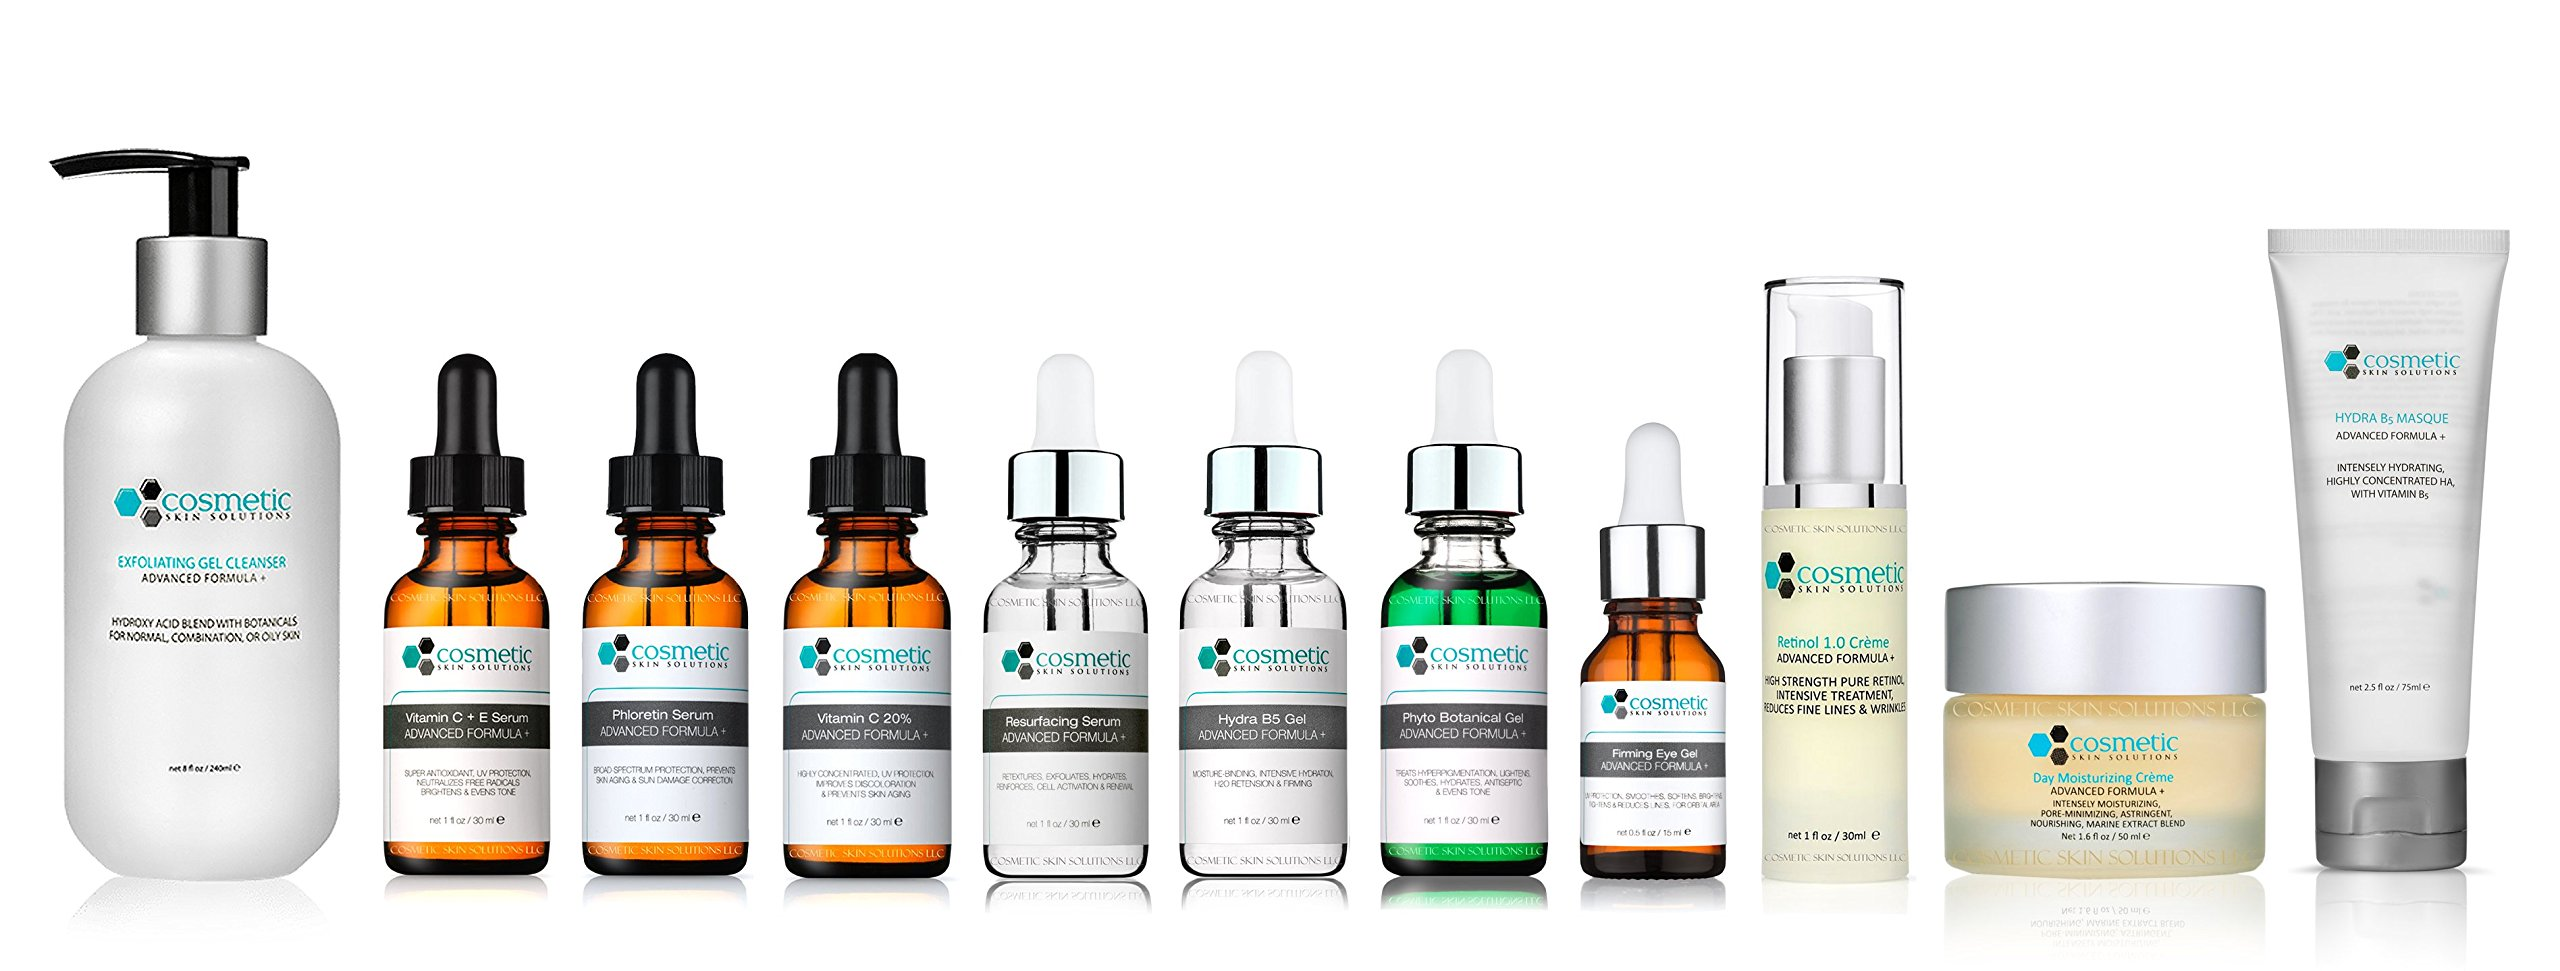 11 Combo Pack Includes EXCLUSIVE SET - Cleanser, Retinol, Vitamin C+E, Phloretin, C 20%, Resurface, Phyto, B5, Eye, Moisturizer, Masque, Advanced Formula, ULTIMATE & COMPLETE ANTI-AGING Skincare Line, 100% Safe & Effective, No Parabens or Oils